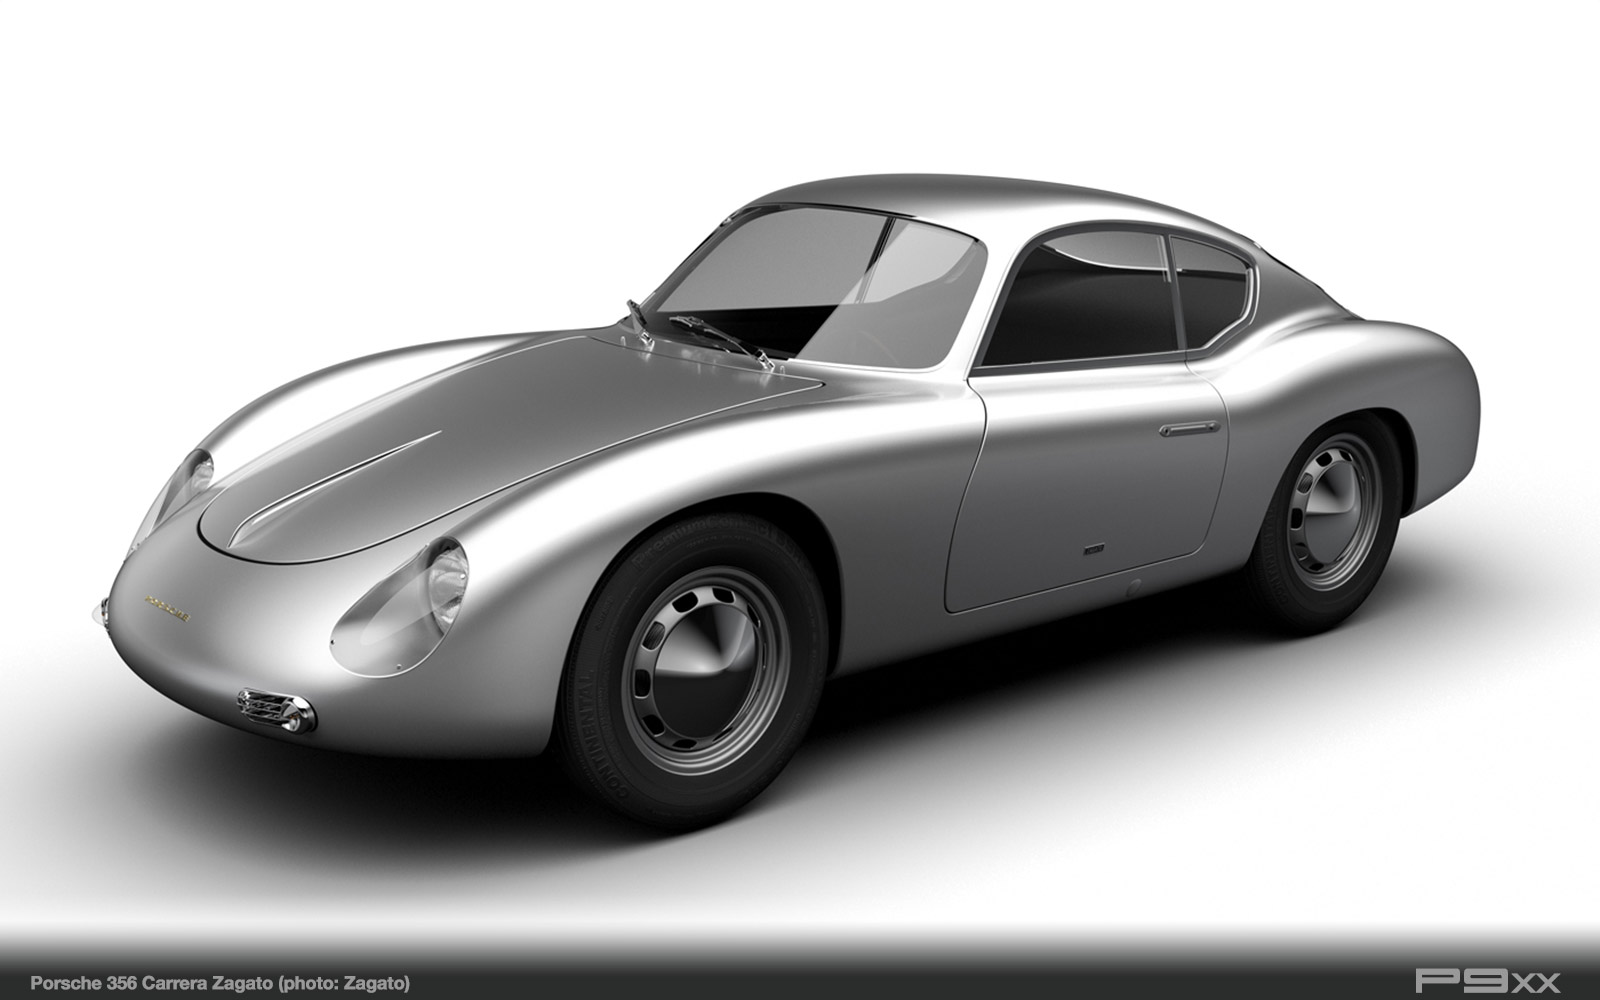 356 Speedster Zagato And 356 Carrera Zagato Return To Life